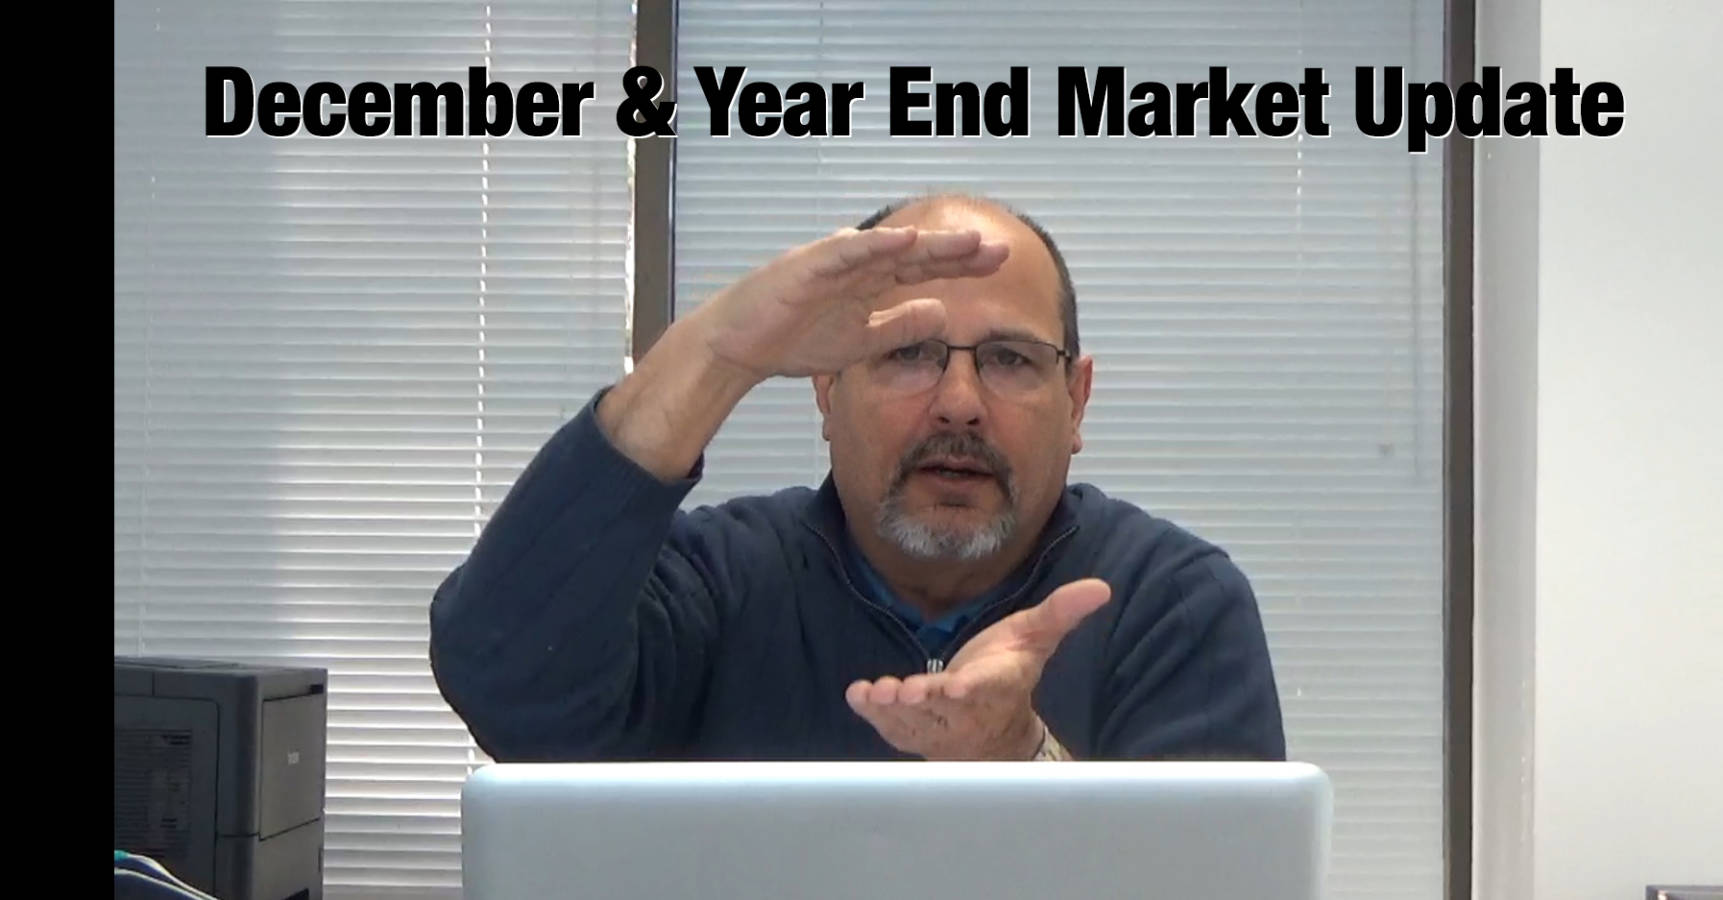 December & Year End Market Update Text